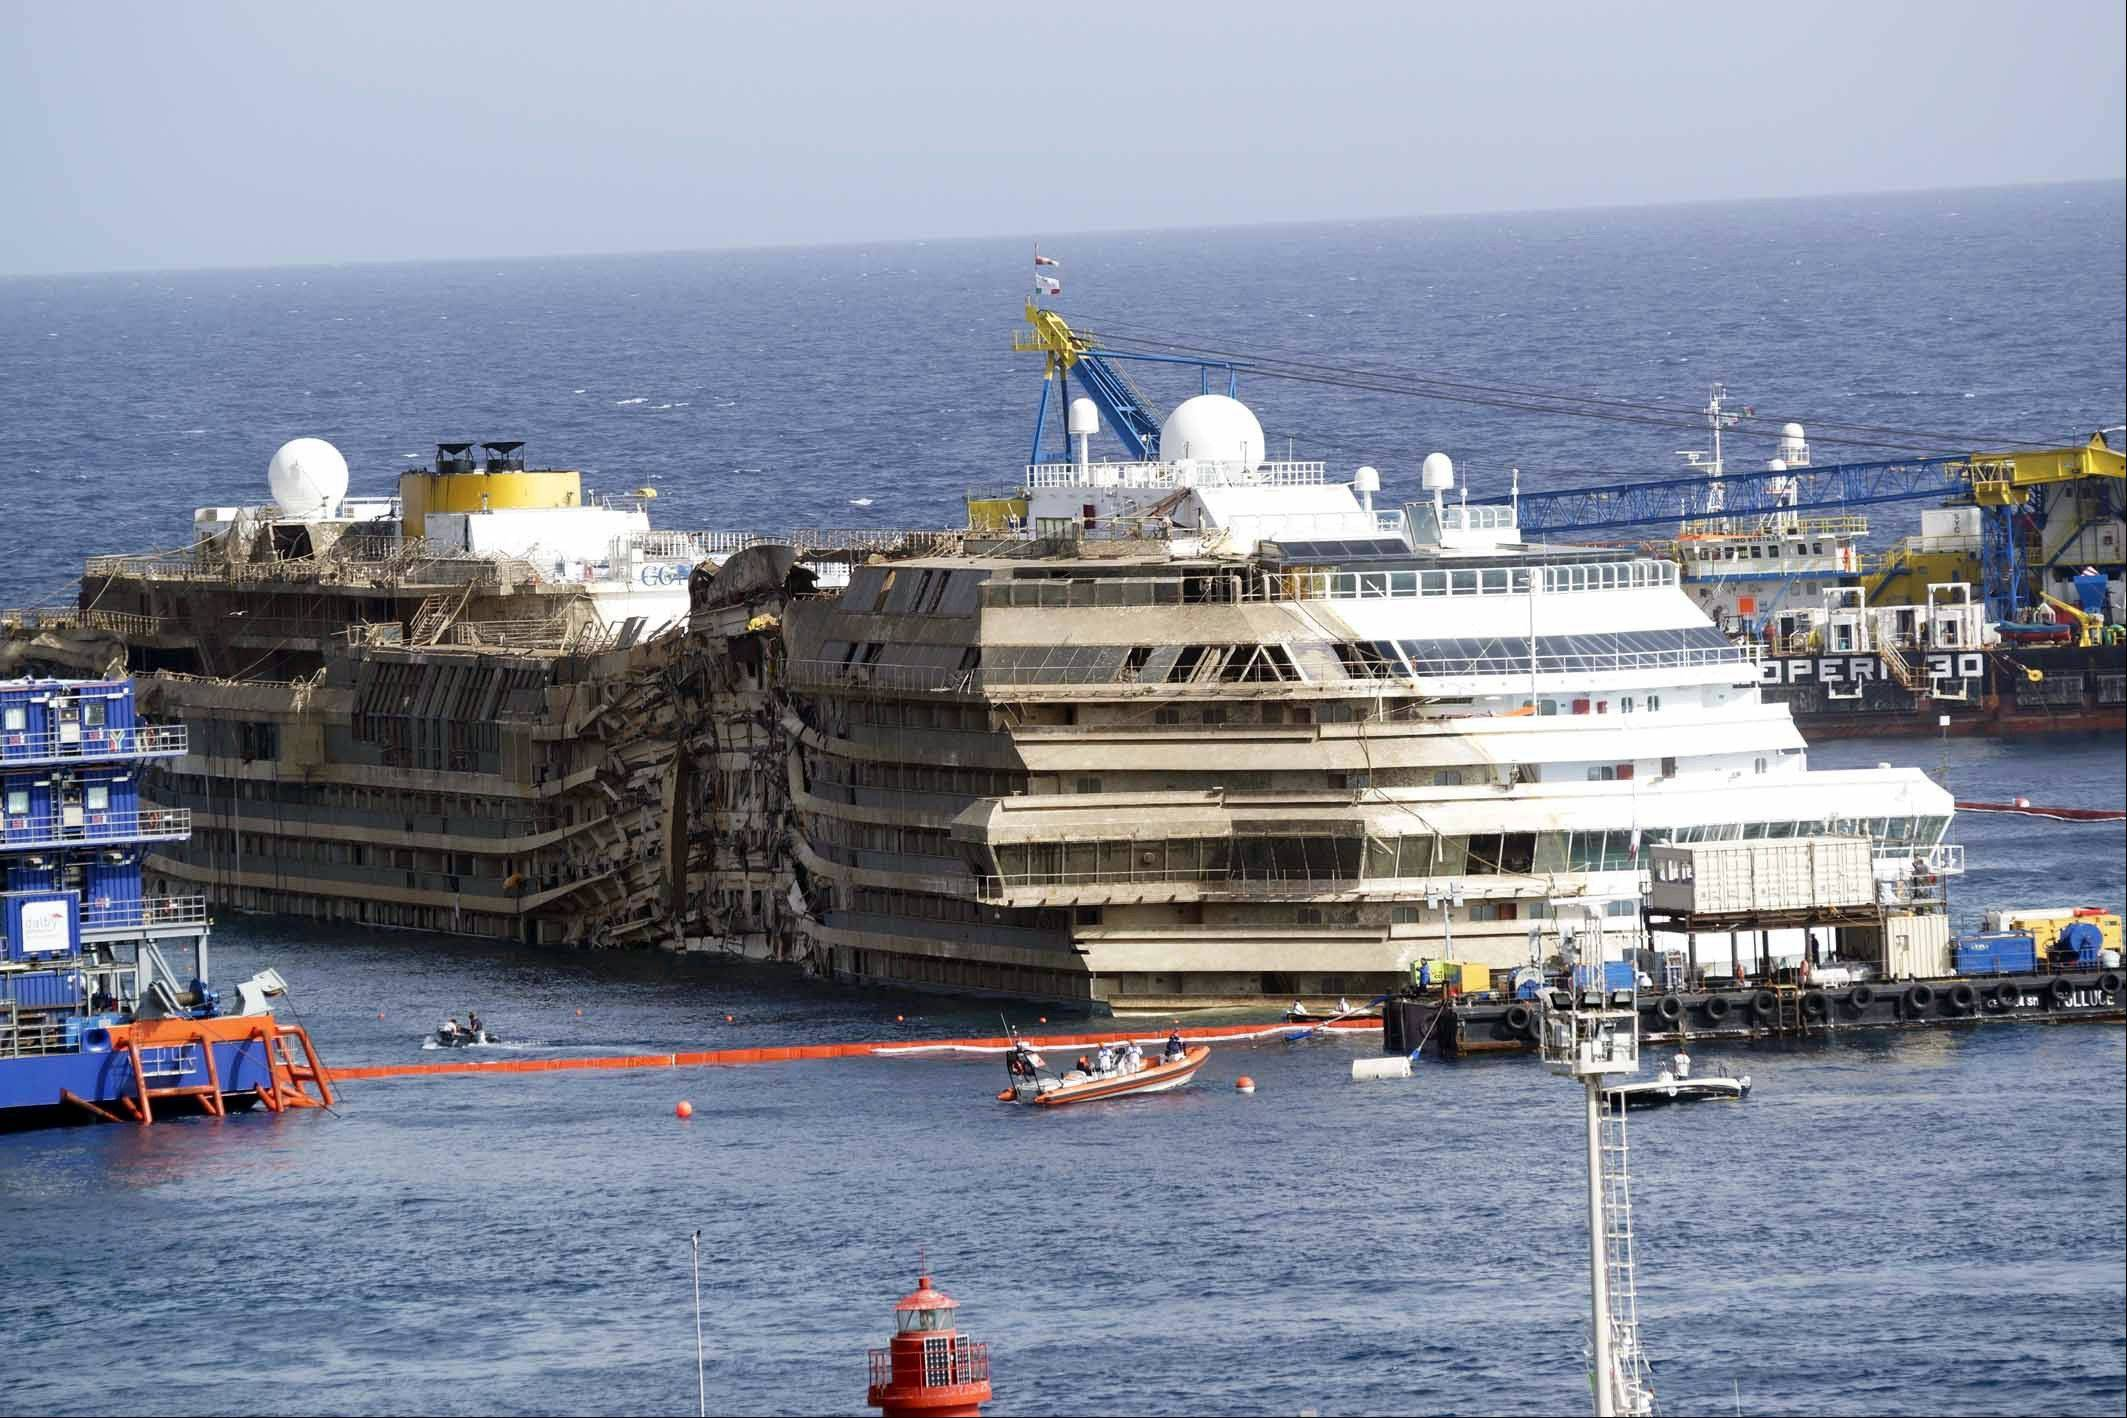 The Costa Concordia ship is seen after it was lifted upright, on the Tuscan Island of Giglio, Italy, Tuesday morning, Sept. 17, 2013. Engineers declared success on Tuesday as the Costa Concordia cruise ship was pulled completely upright during a complicated, 19-hour operation to wrench it from its side where it capsized last year off Tuscany, an unprecedented feat that sets the stage for it to be towed away next year.